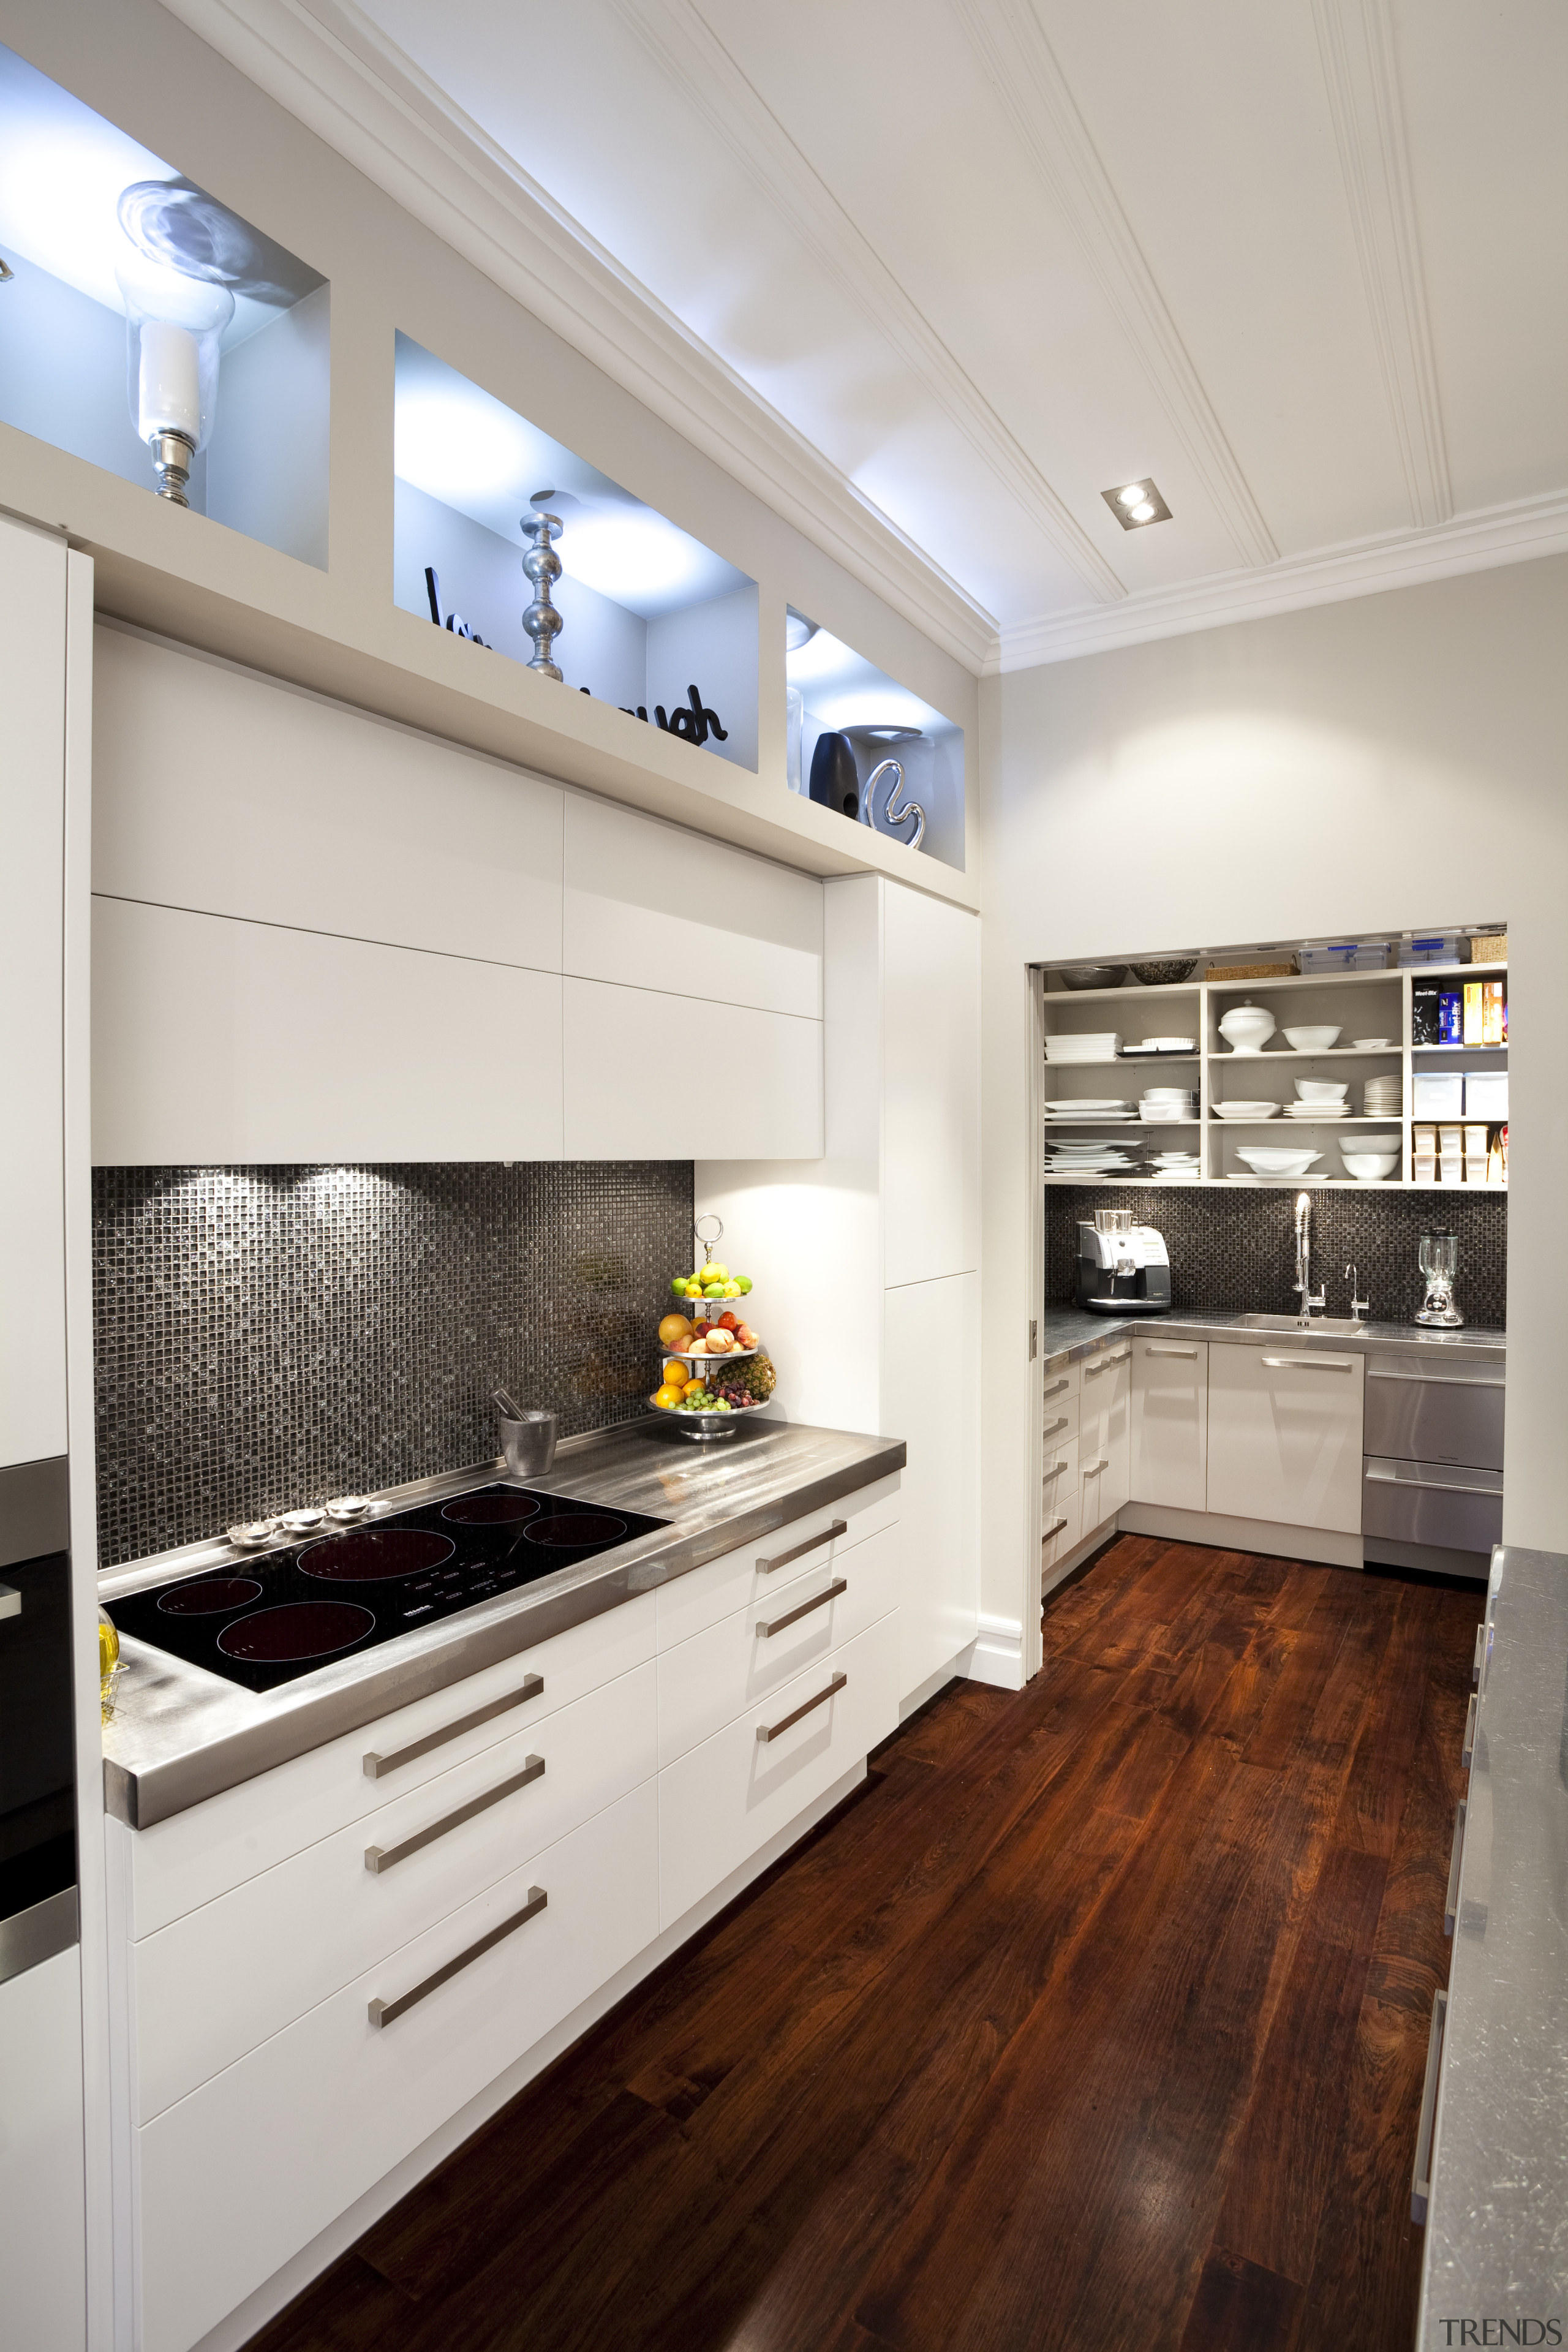 cabinets wuth stainless handles, white against dark wooden cabinetry, ceiling, countertop, cuisine classique, floor, flooring, hardwood, home appliance, interior design, kitchen, laminate flooring, room, wood flooring, gray